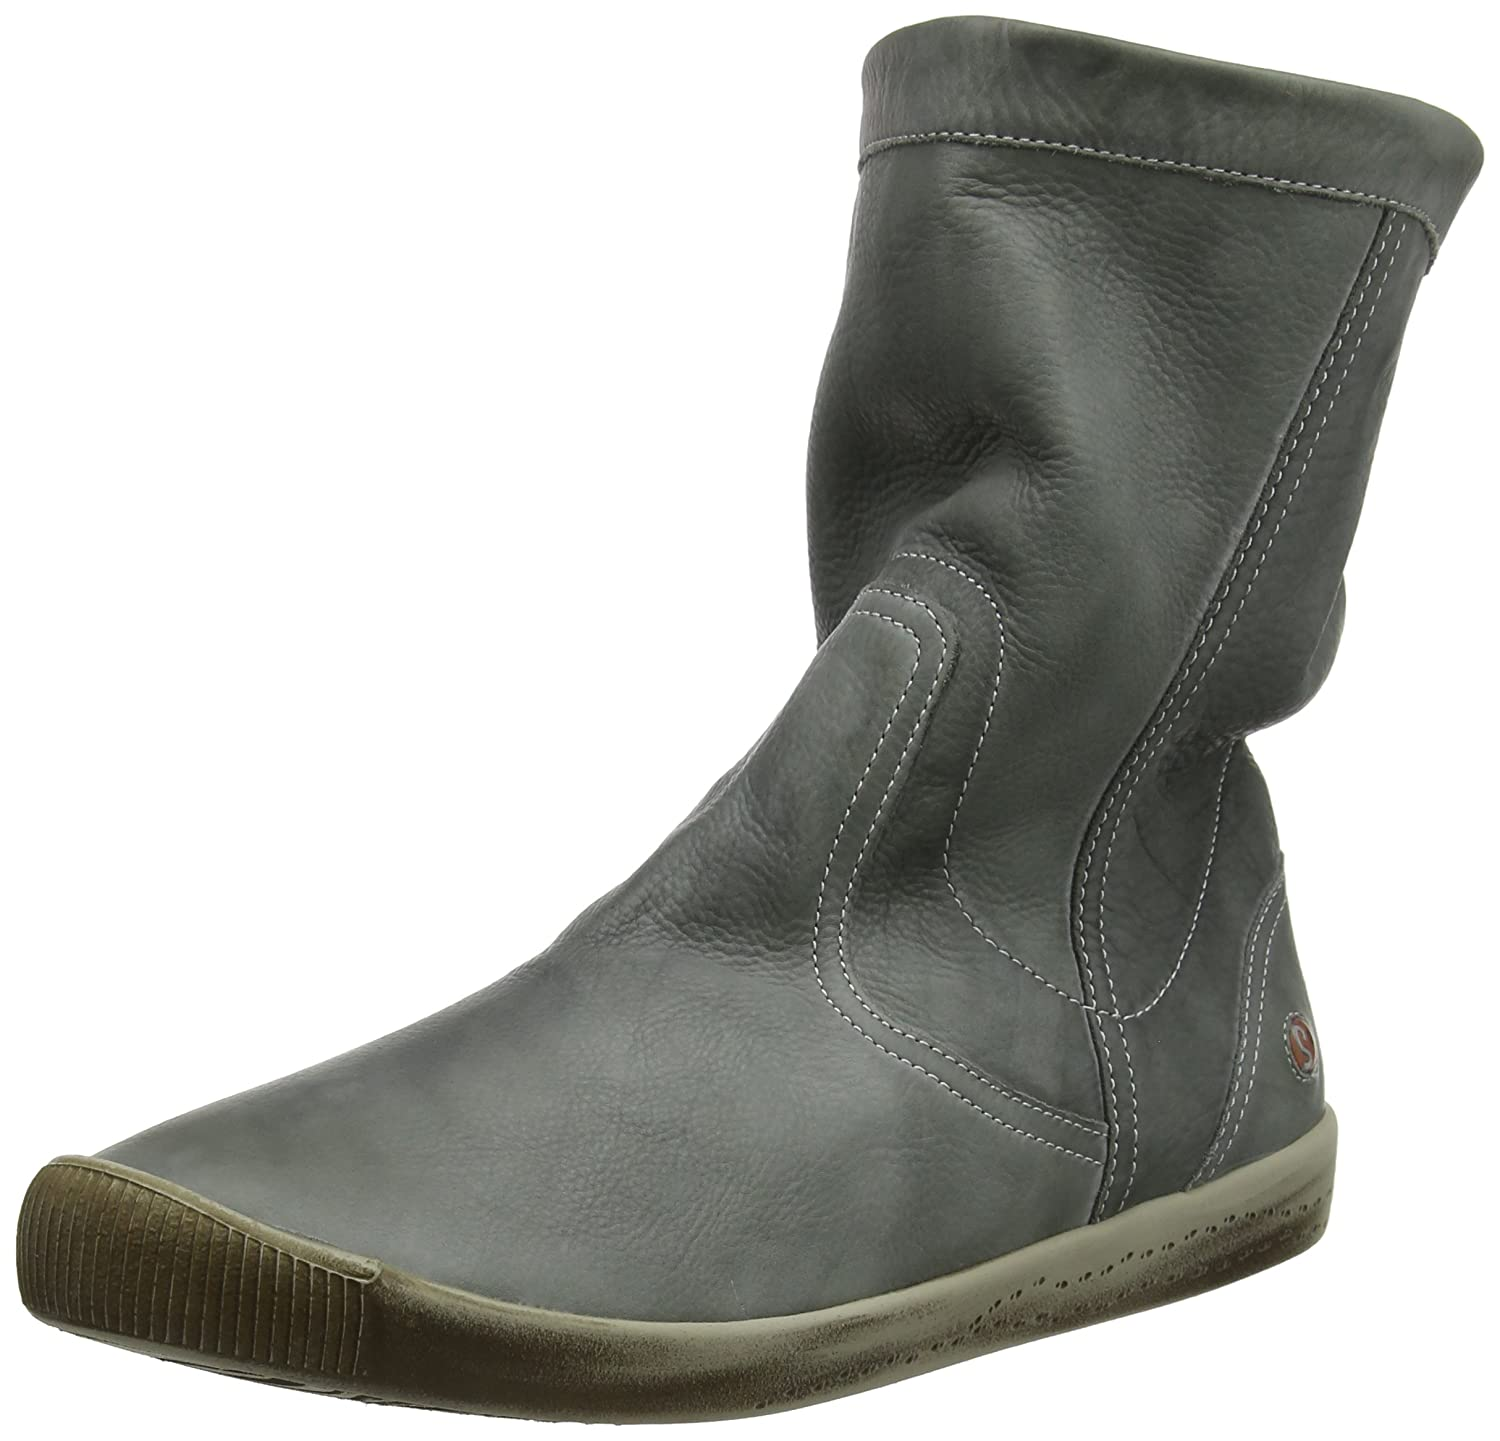 Softinos B012UYKKTO Iggy269sof, 12729 Bottes Souples Femme 023) Gris (Militar 023) 2dfc64b - shopssong.space